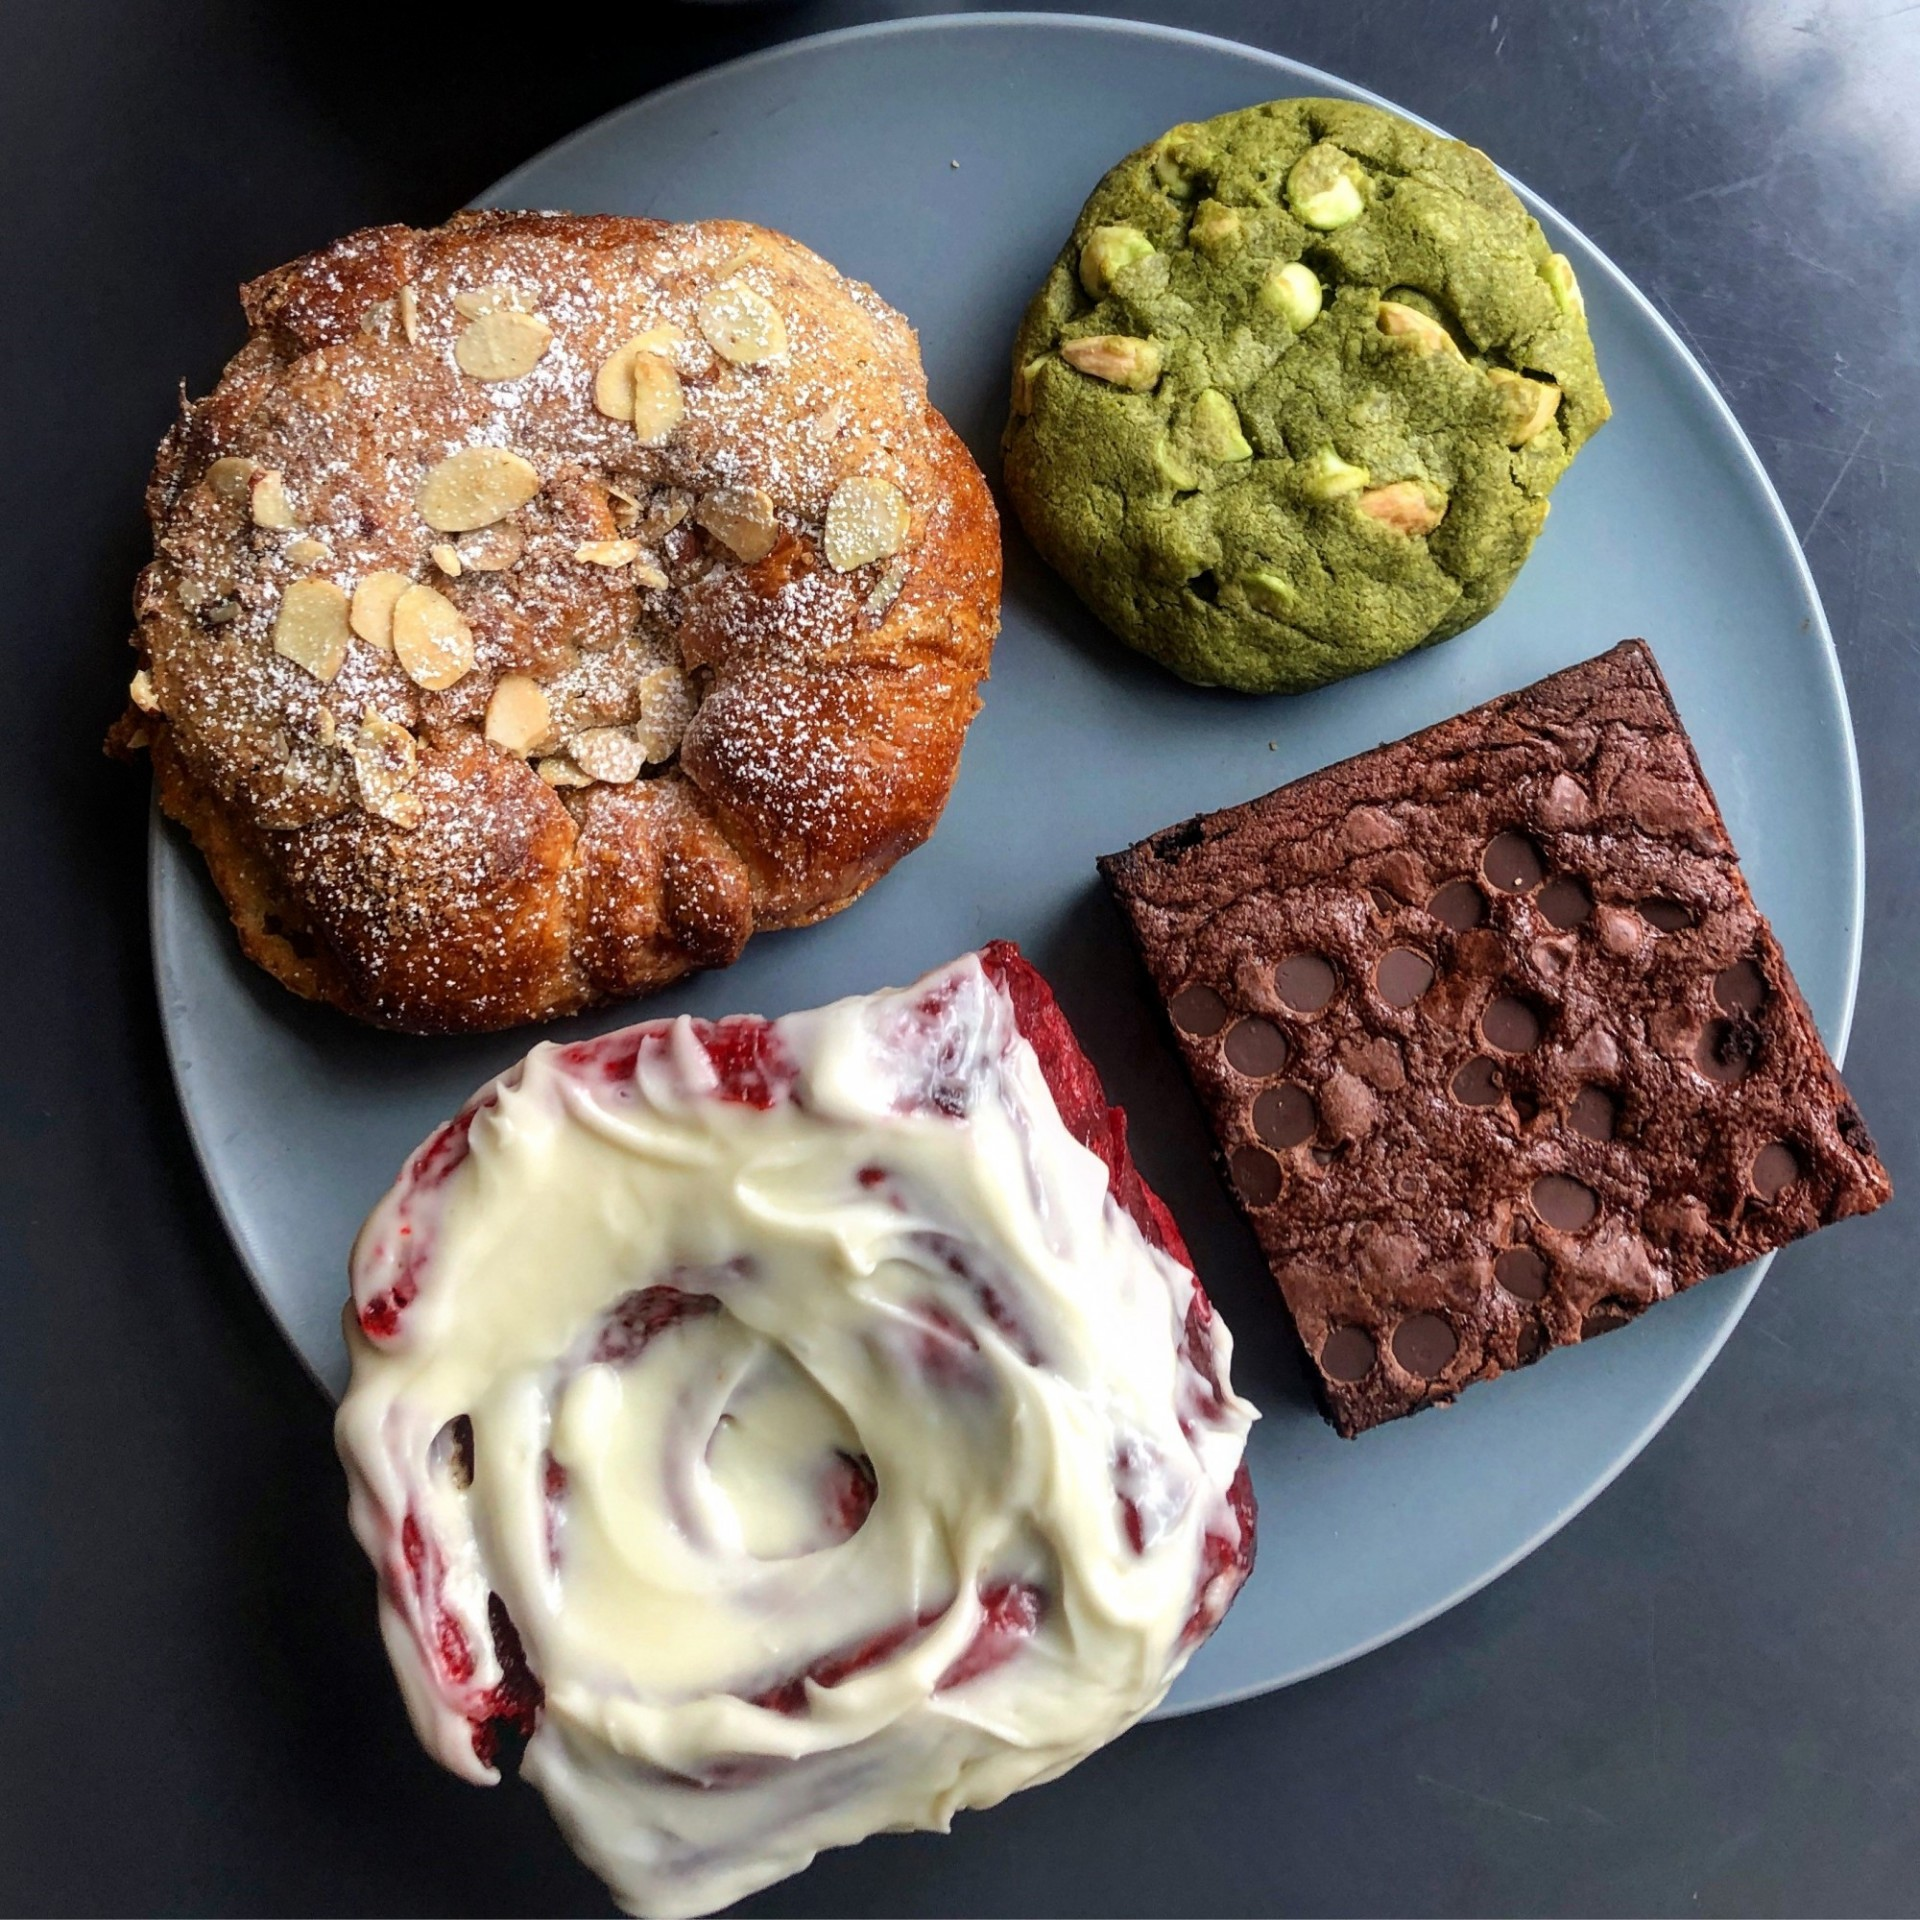 Apple cinnamon french toast croissant, matcha cookie, gluten-free brownie, and red velvet cinnamon roll